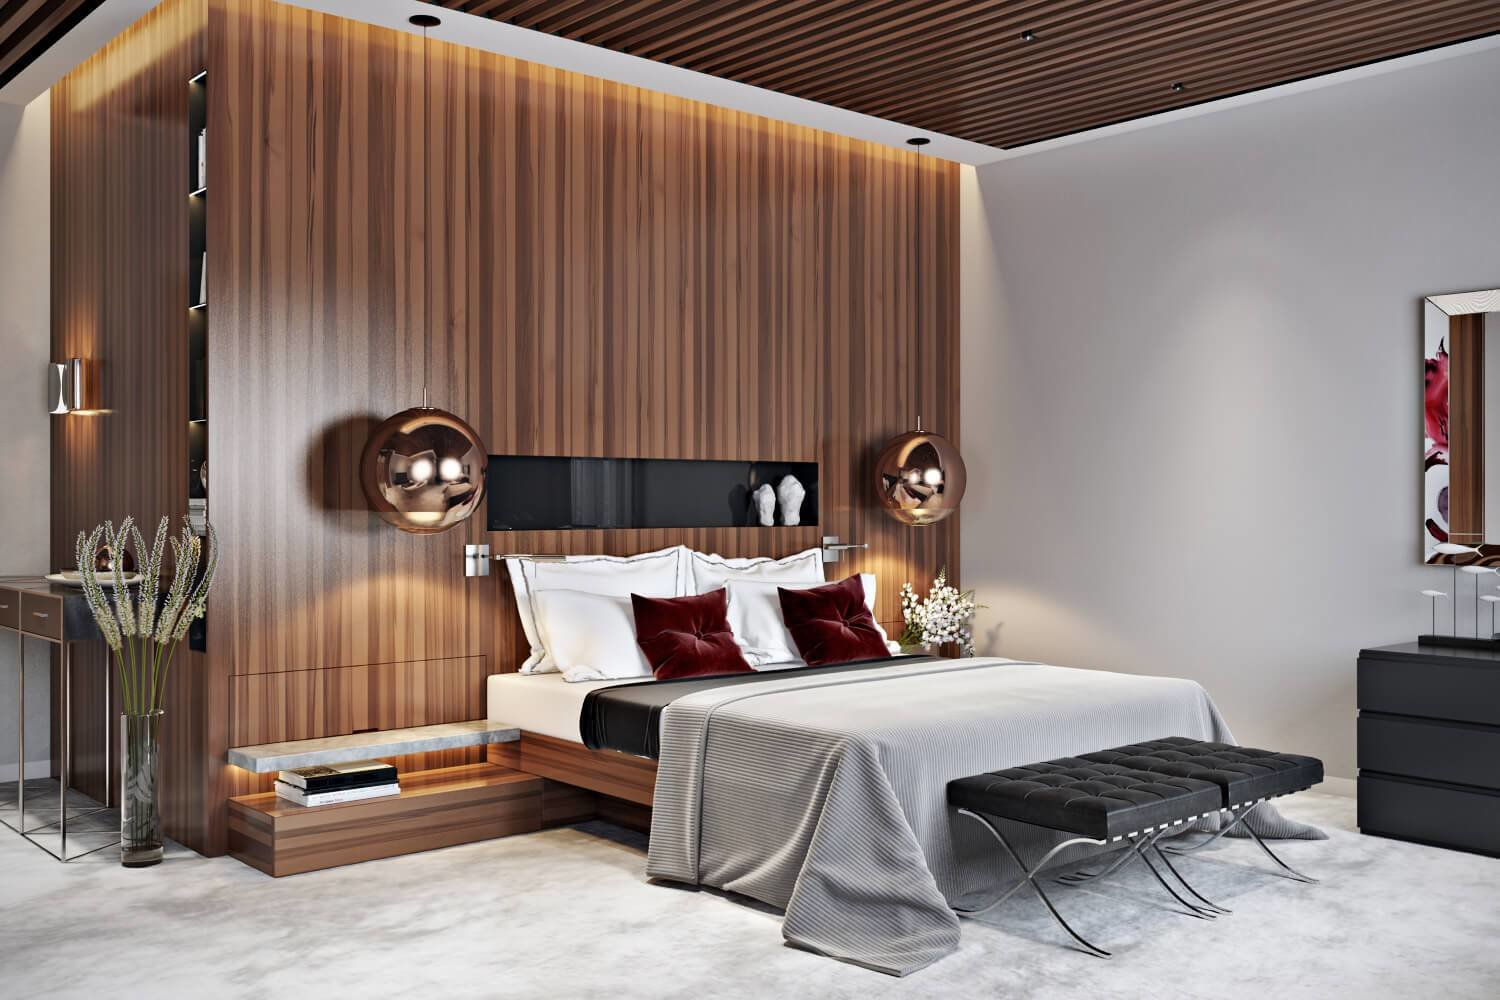 Best Interior Design Renders For Bedroom Project Archicgi With Pictures